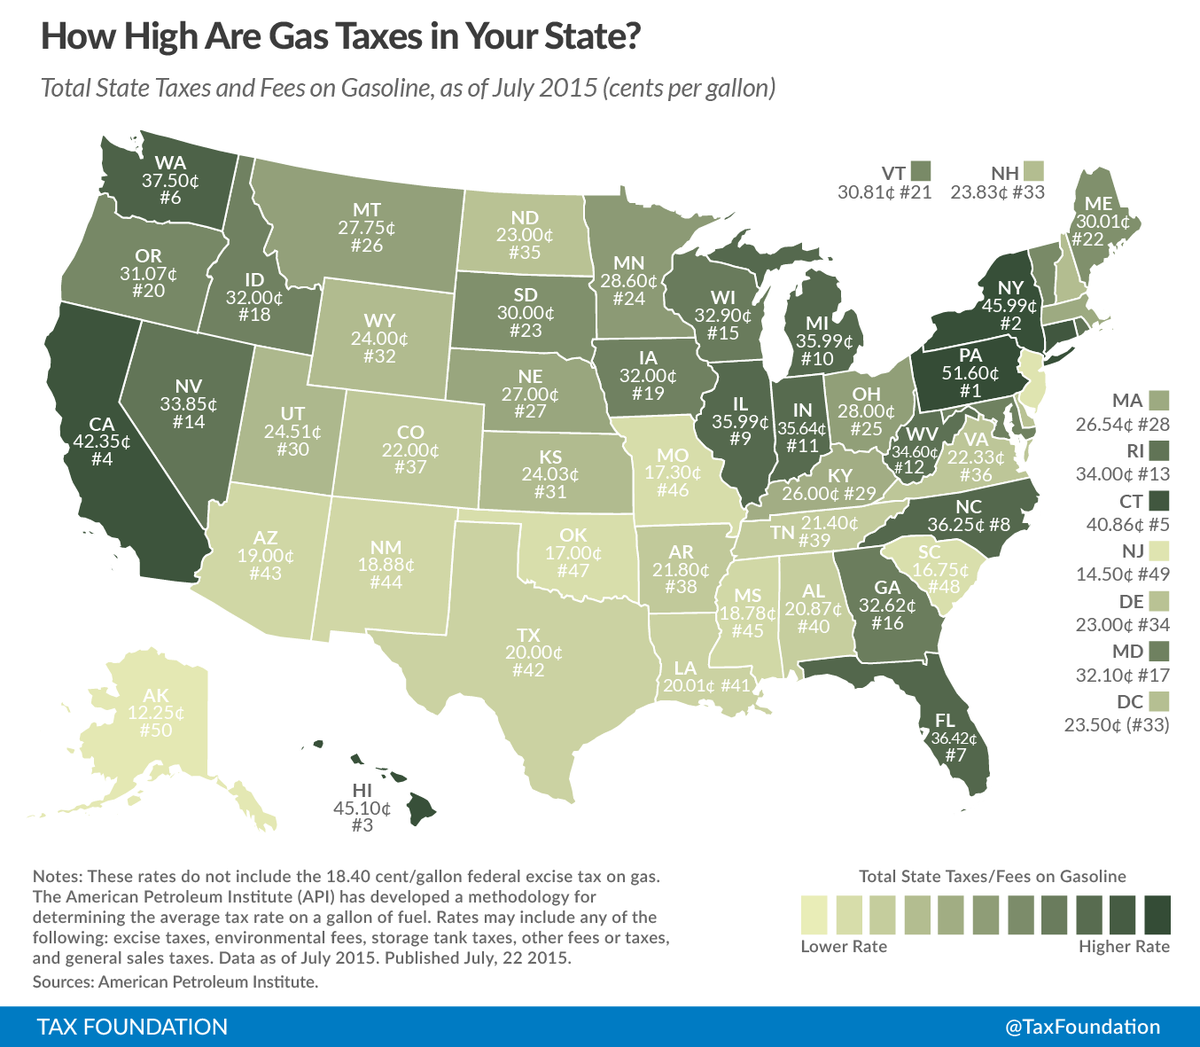 """How high are gas #taxes in your state? http://t.co/DvtKqFYvMb by @ColbyPastre   @Liberty4pa @ManhattanInst http://t.co/bQyyR2hkSK"""""""